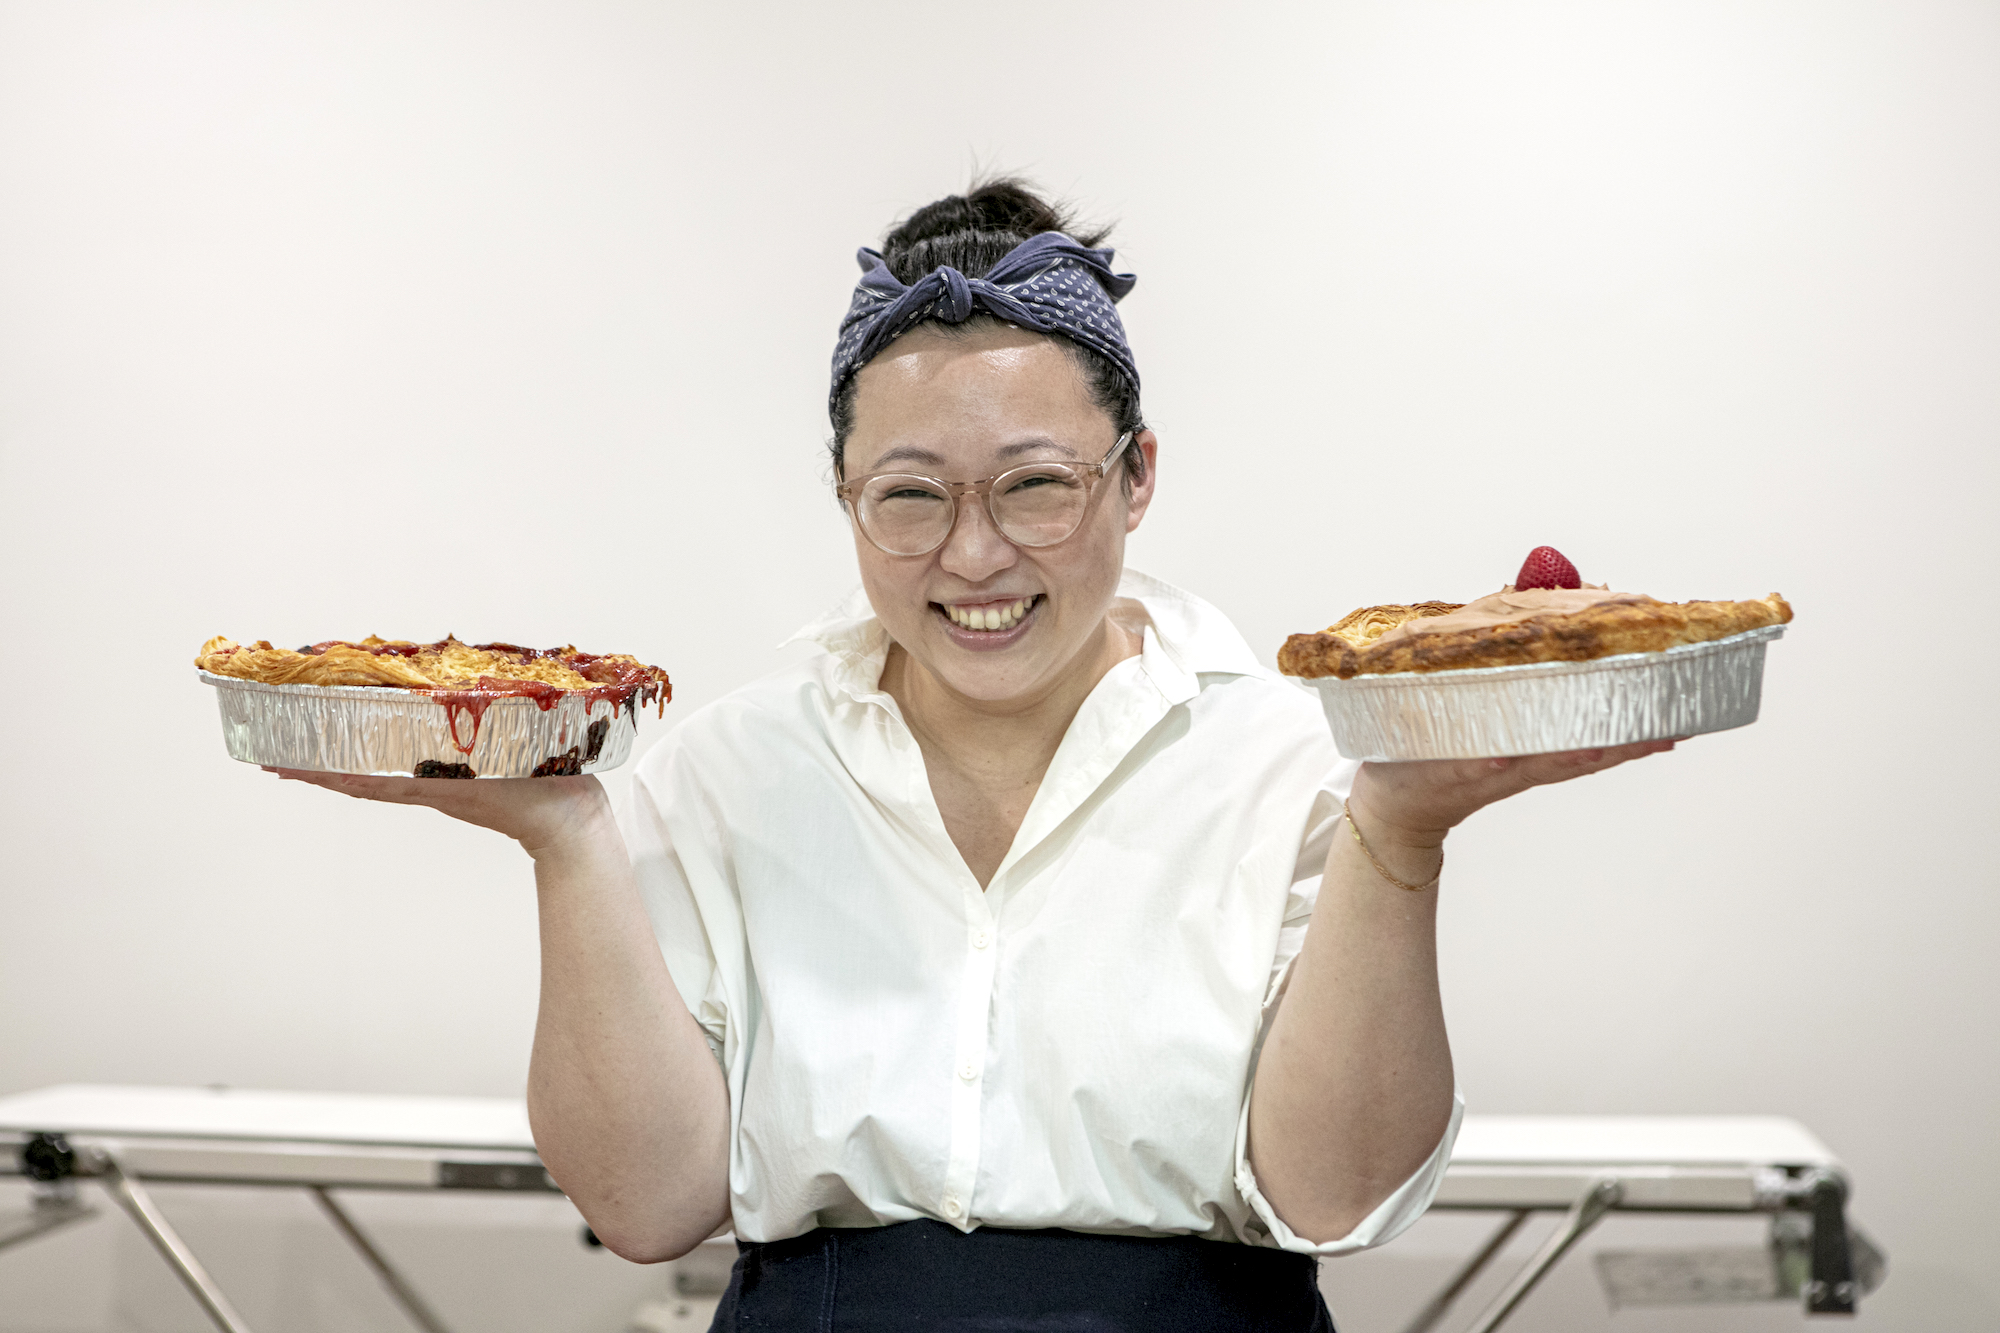 Meet Raeanne Young Sagan of Hey Pie People who is exhibiting what it means to be a home baker today